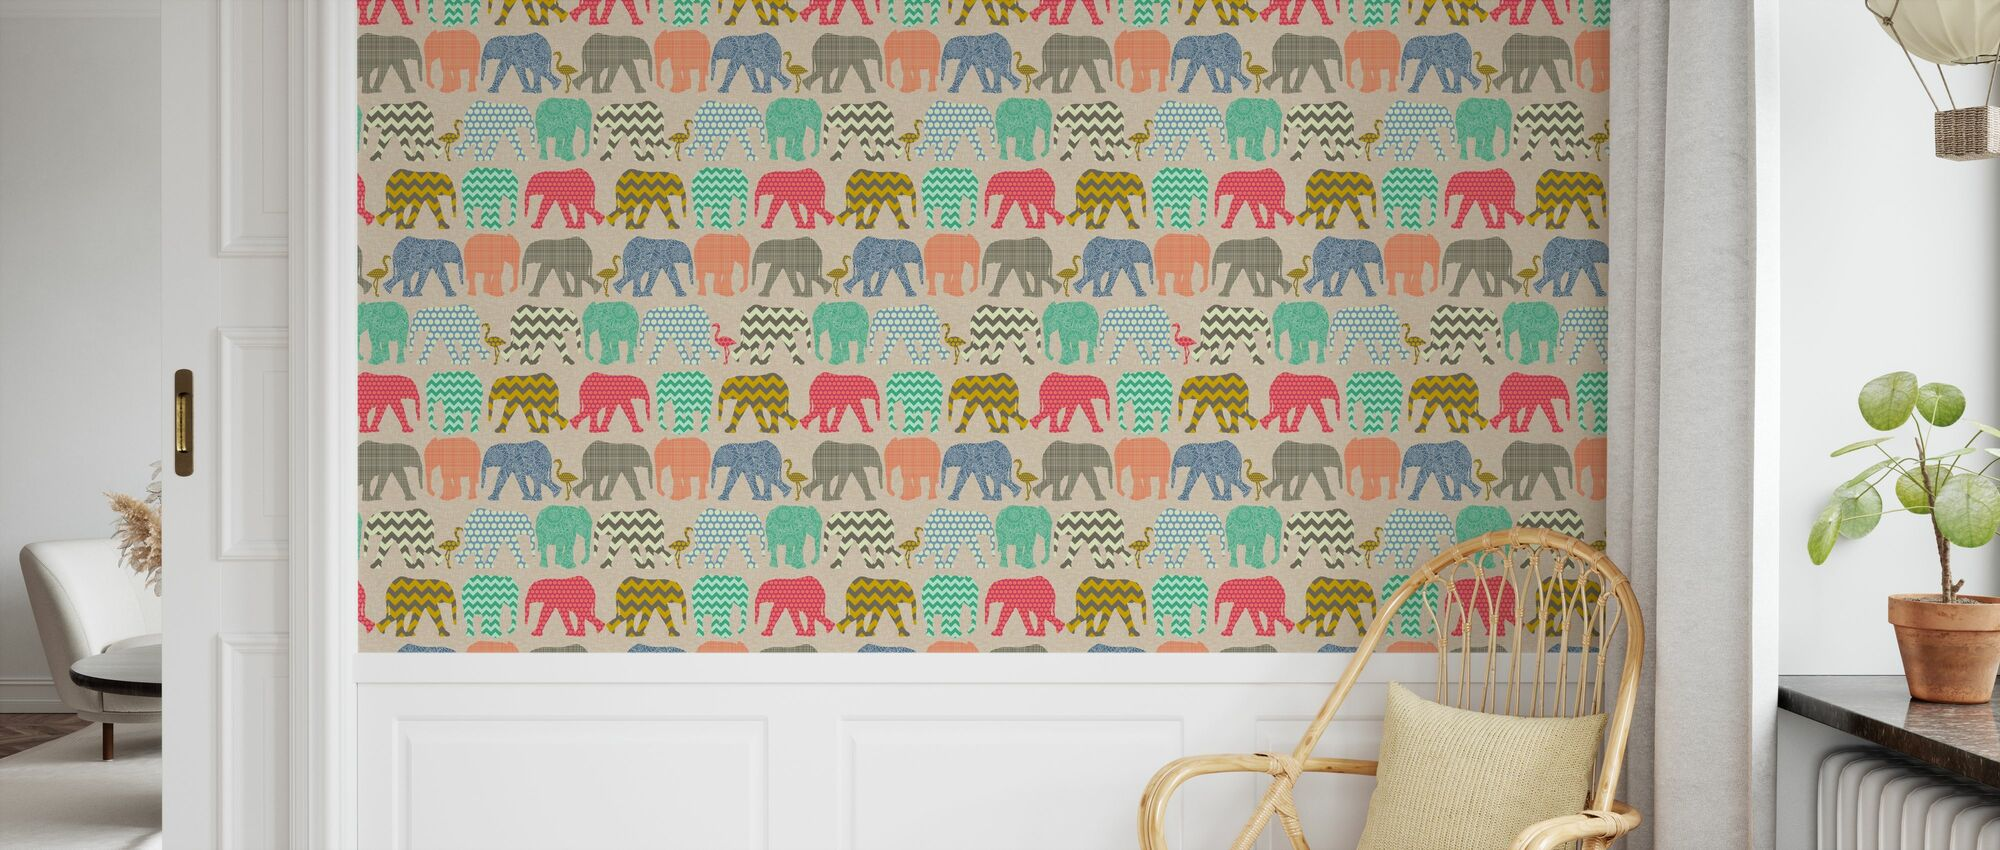 Baby Elephants and Flamingos 2 - Wallpaper - Kids Room